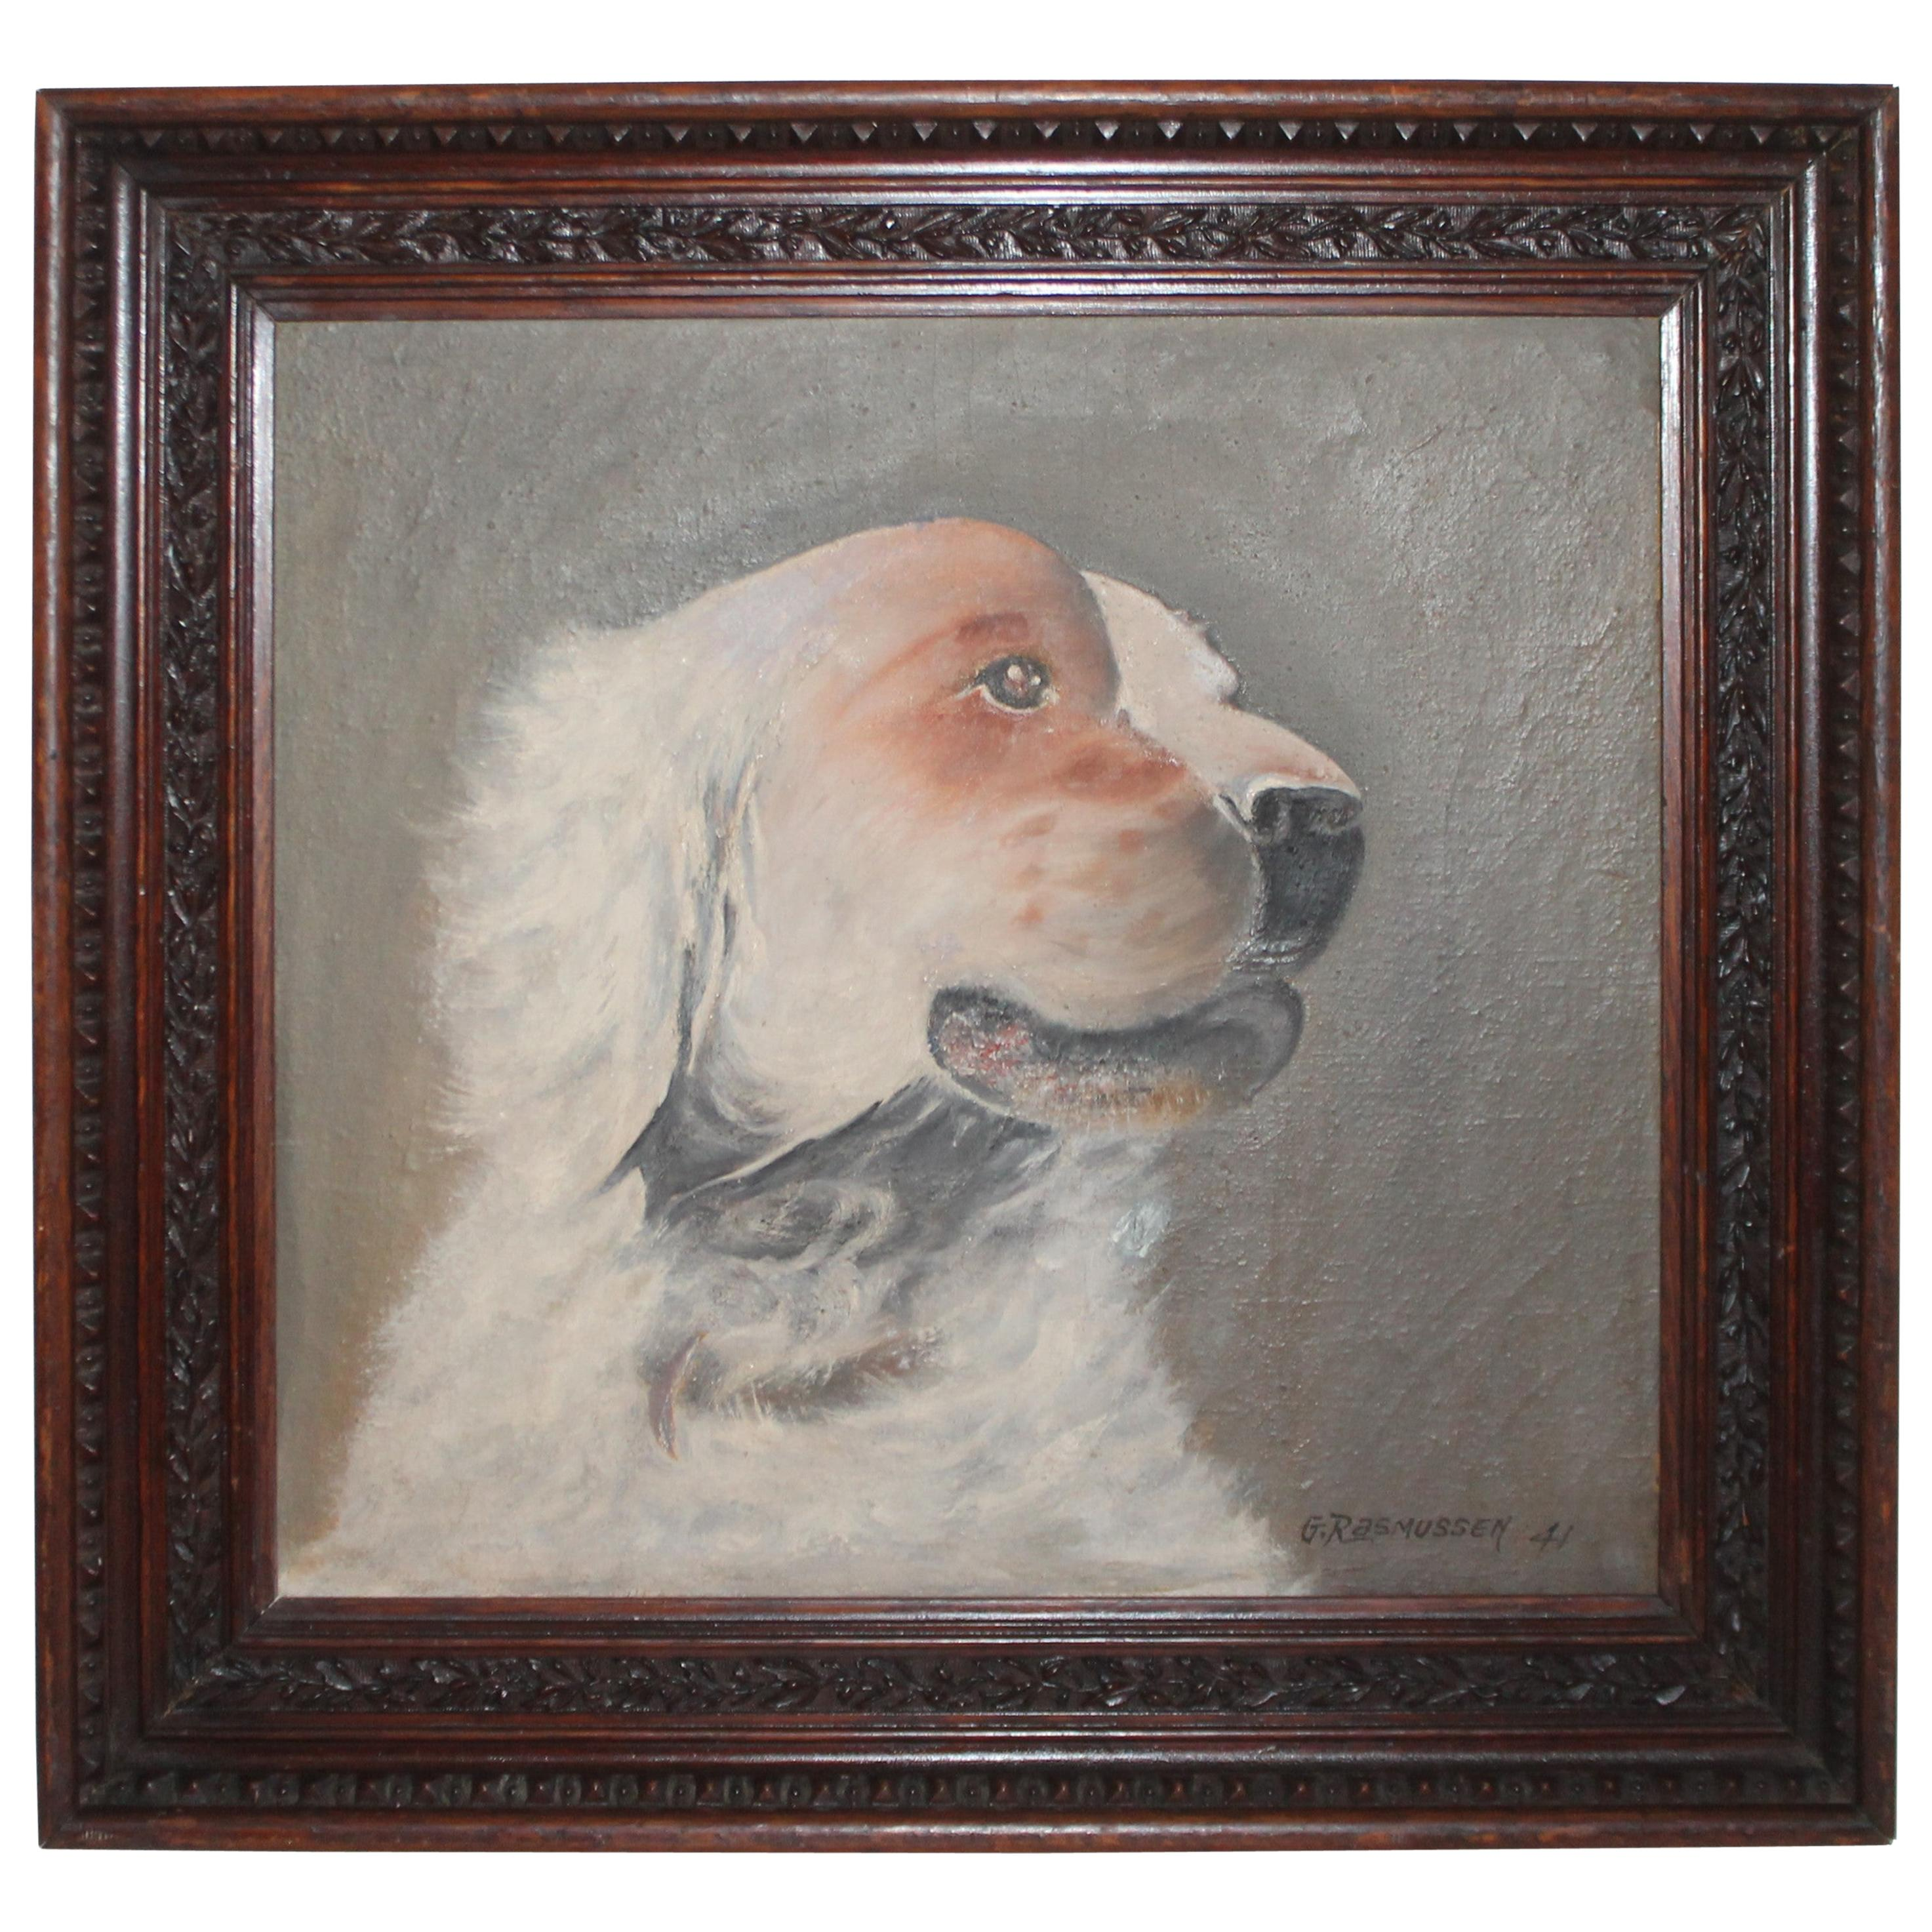 19th Century Oil Painting of a Dog in a Walnut Hand Carved Frame, Dated 1841